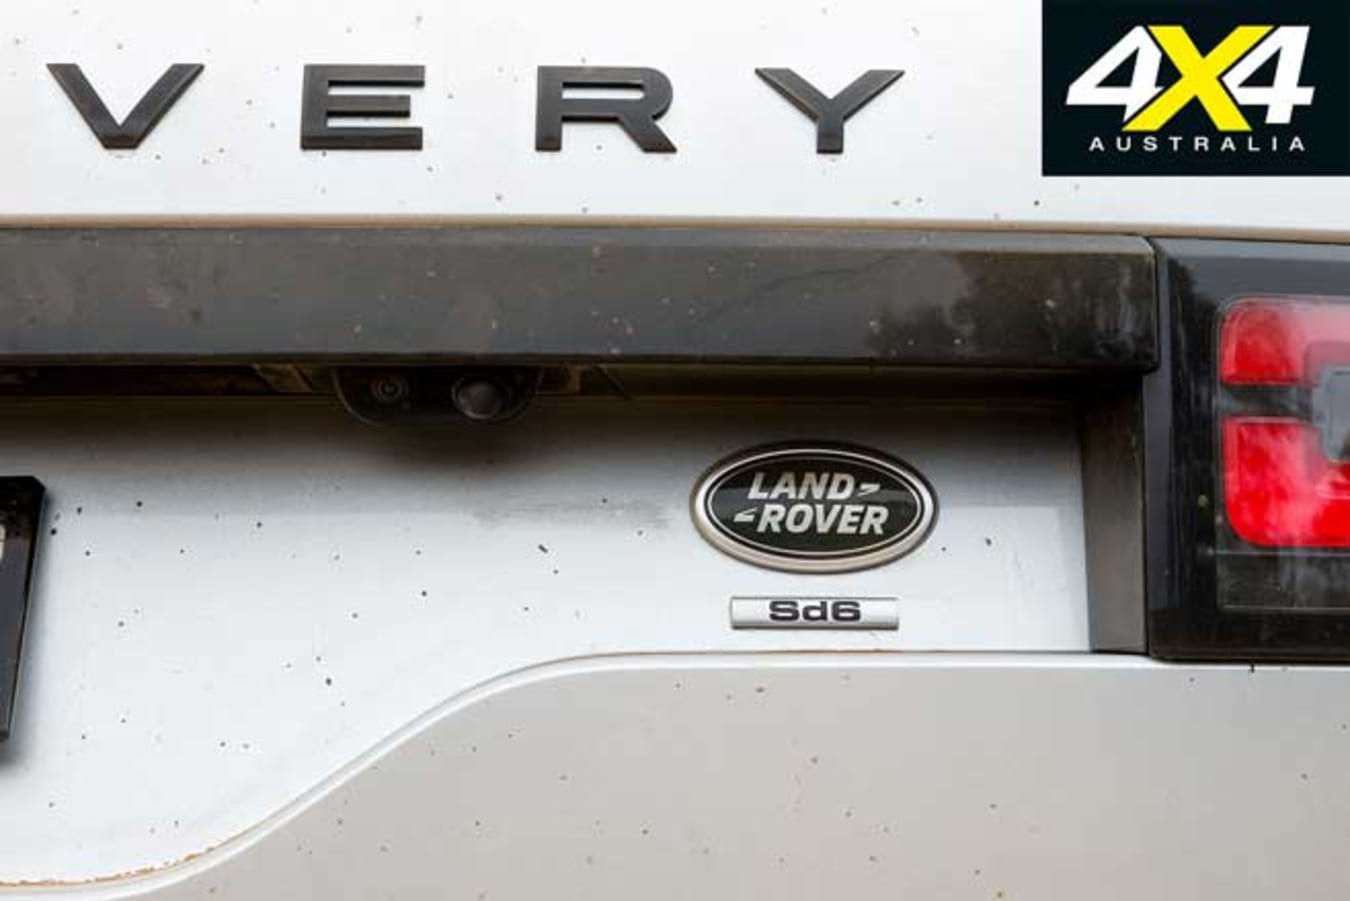 2020 4 X 4 Of The Year Land Rover Discovery Sd 6 Badge Jpg